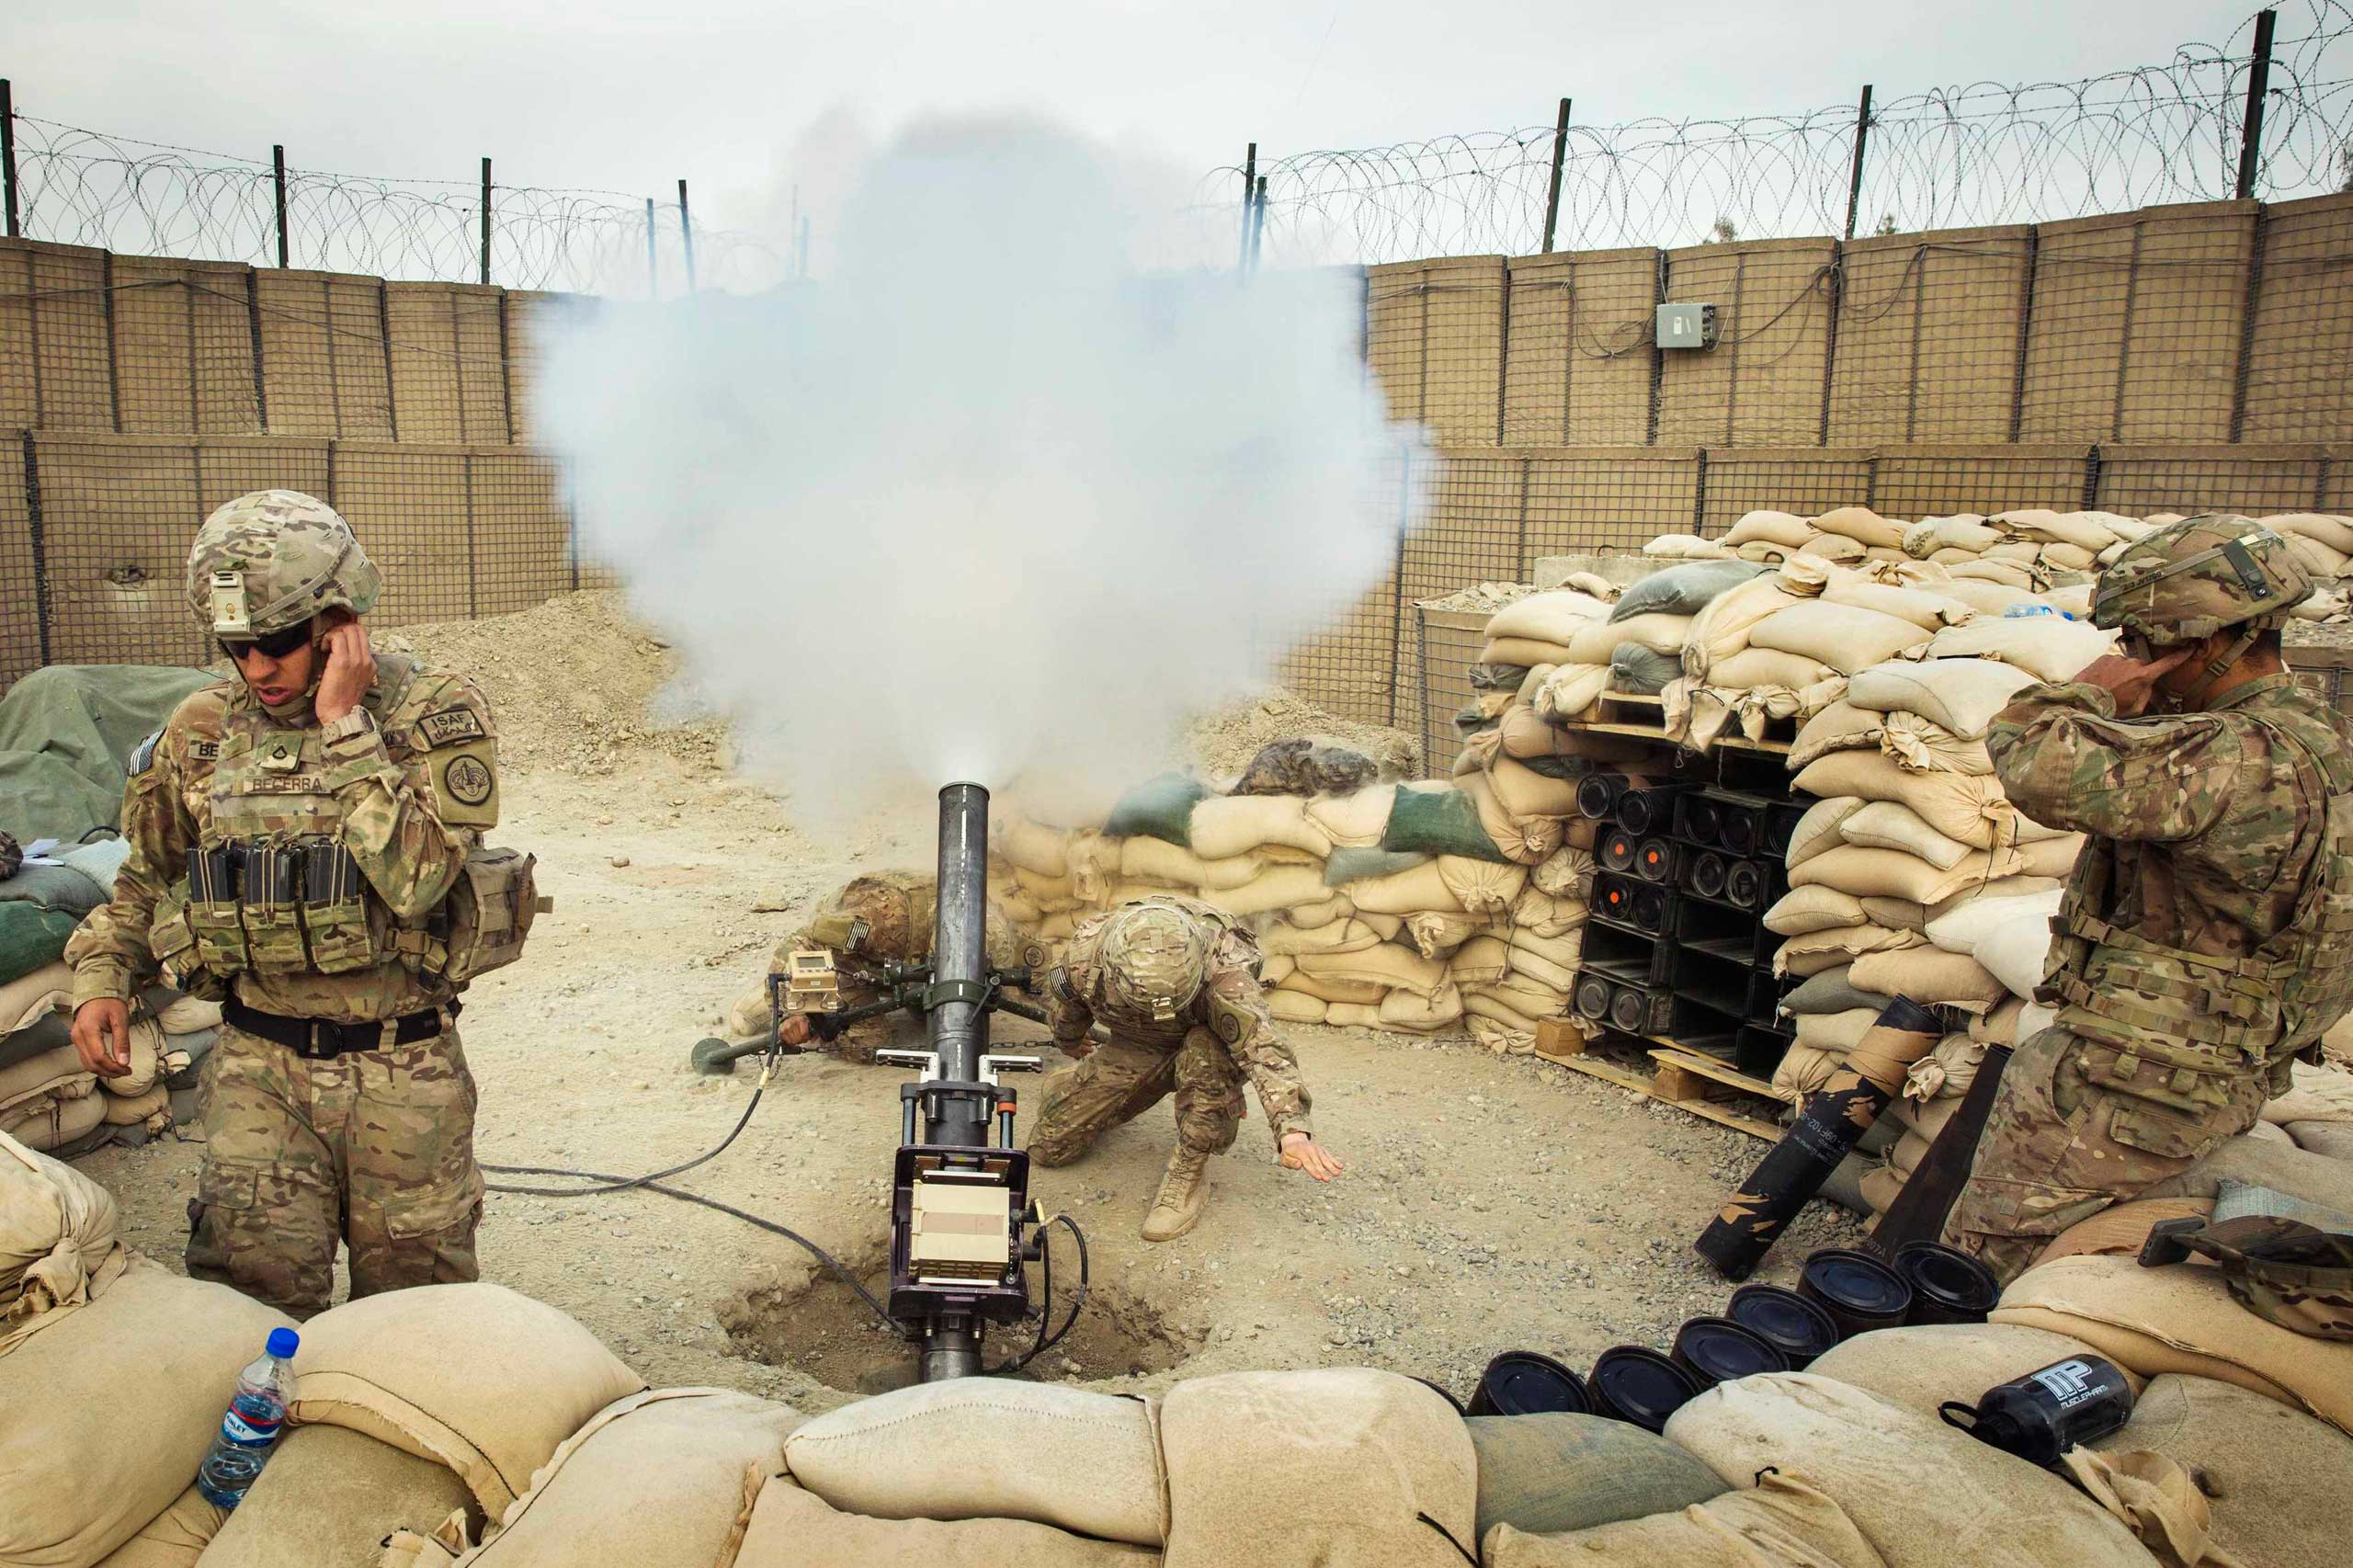 U.S. soldiers from the 3rd Cavalry Regiment fire a 120mm mortar during an exercise on forward operating base Gamberi in the Laghman province of Afghanistan on Dec. 24, 2014.